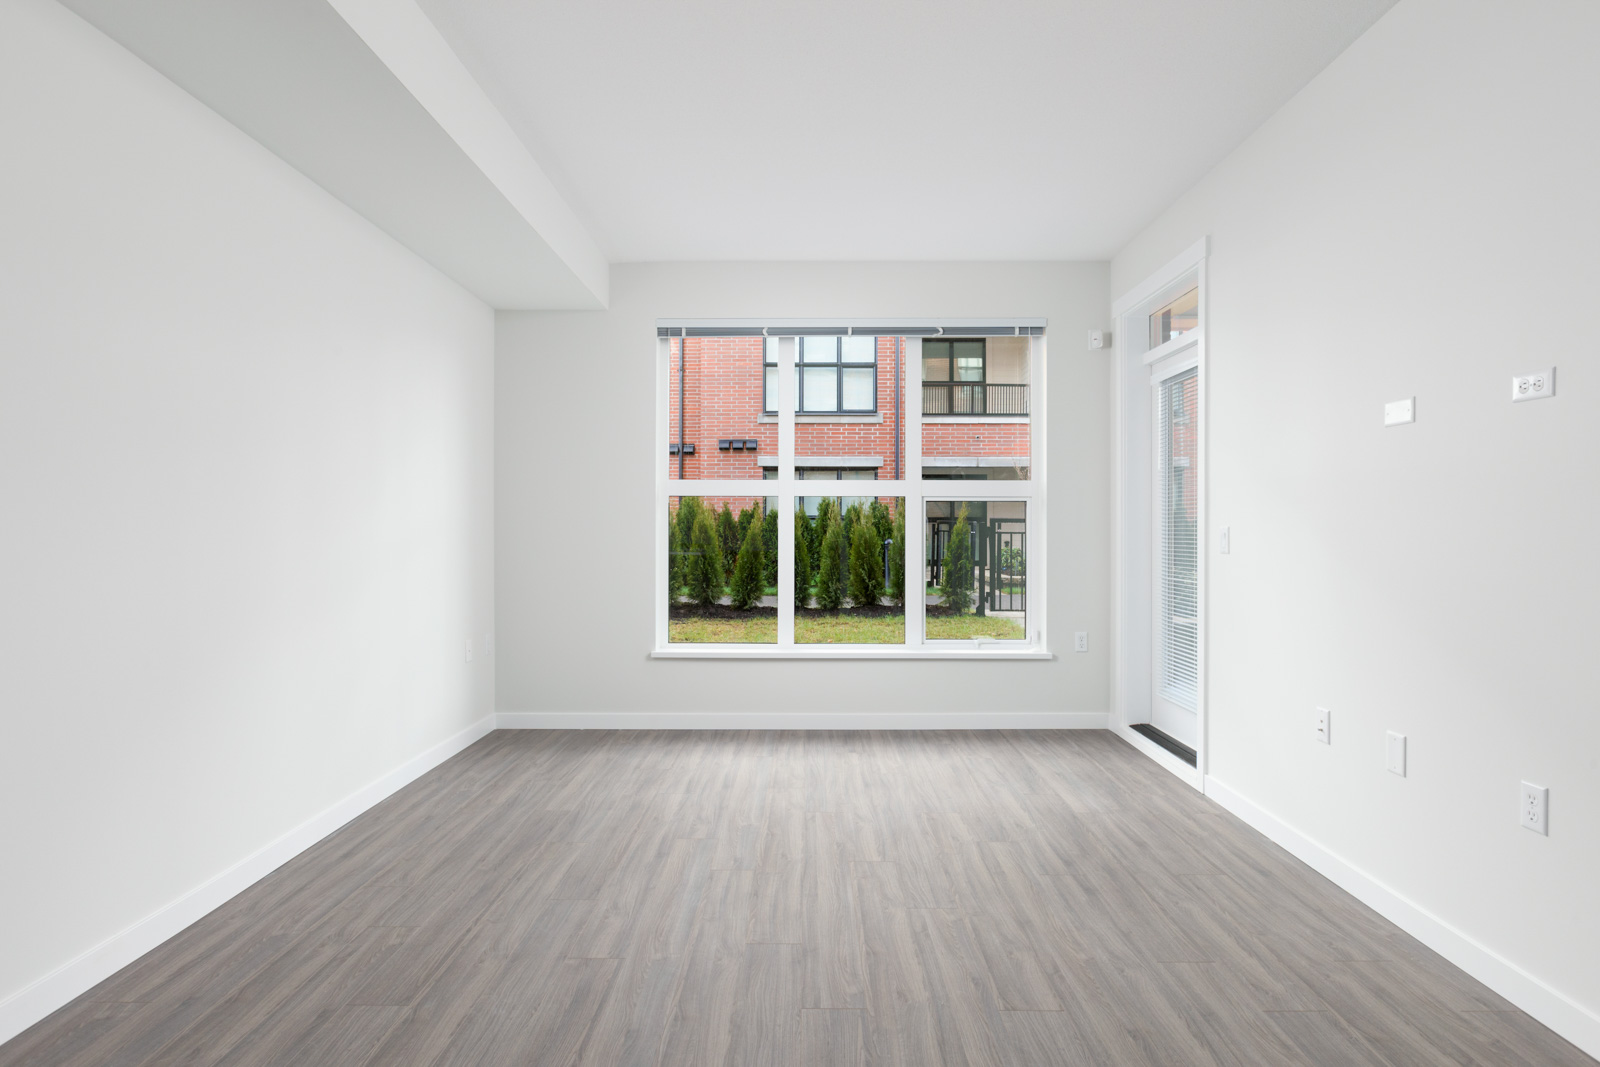 brand new empty living room with grey hardwood floors and windows in richmond rental condo managed by birds nest properties at trafalgar square